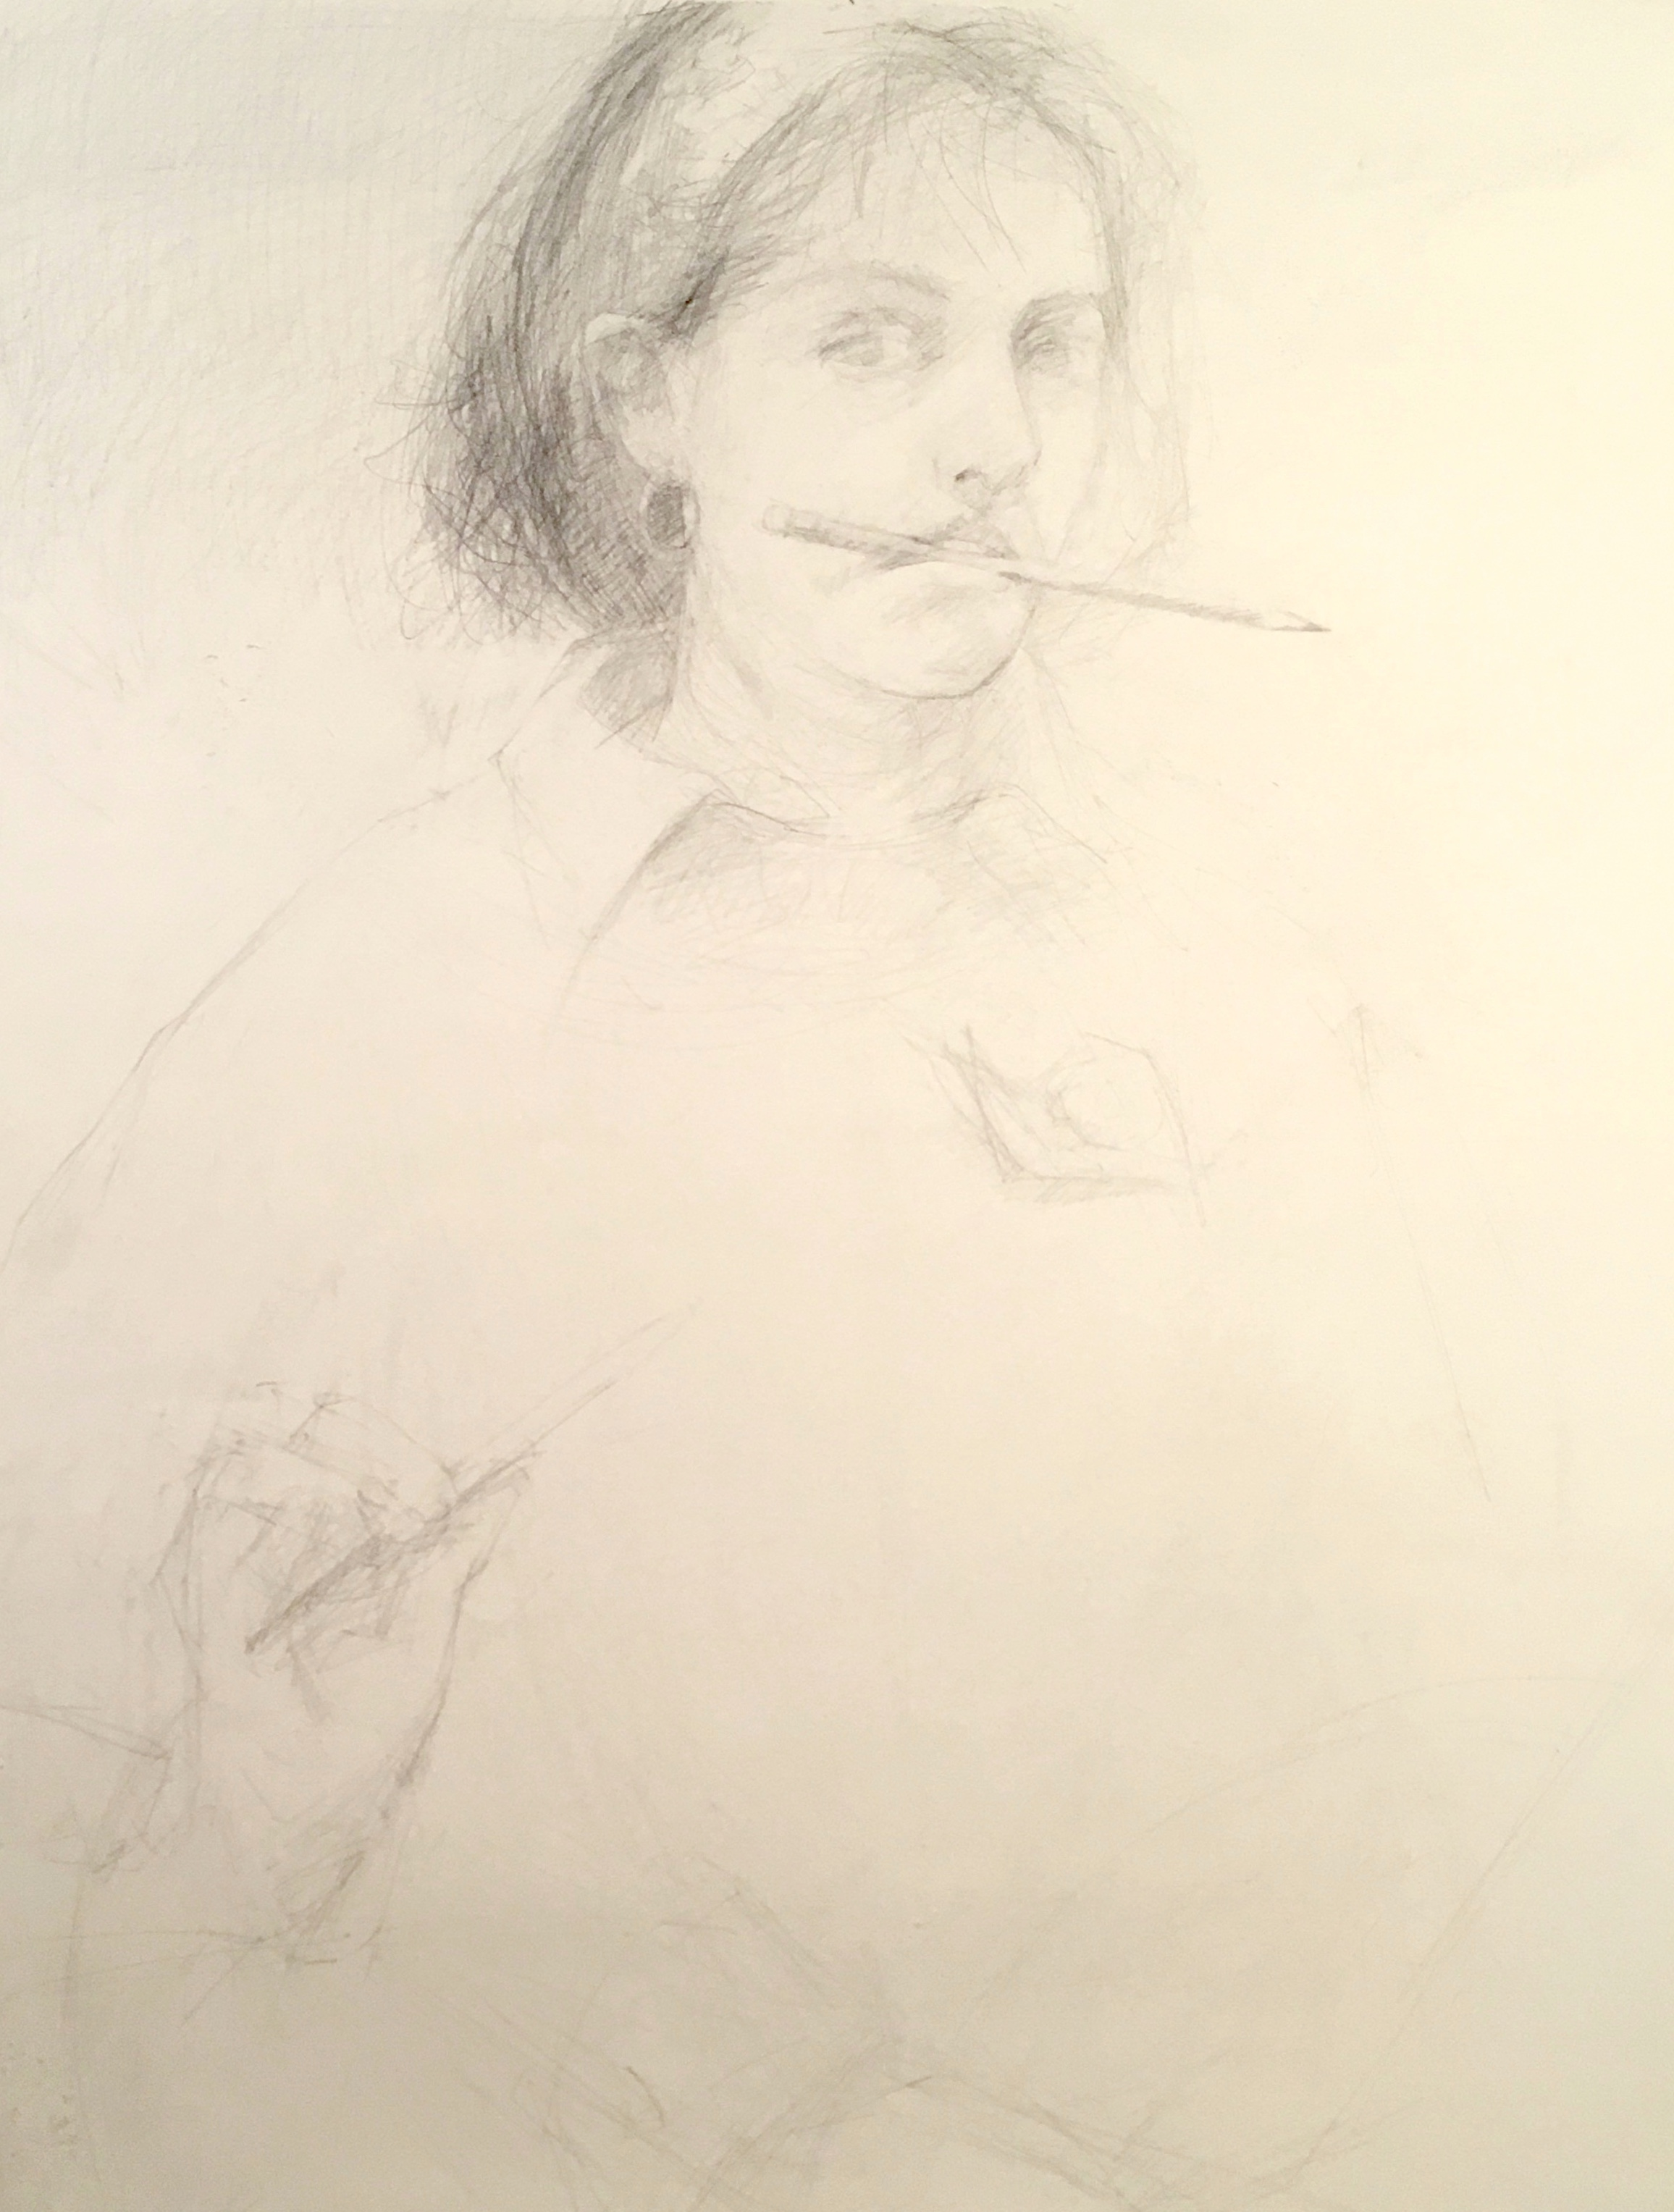 graphite self portrait of artist holding a pencil